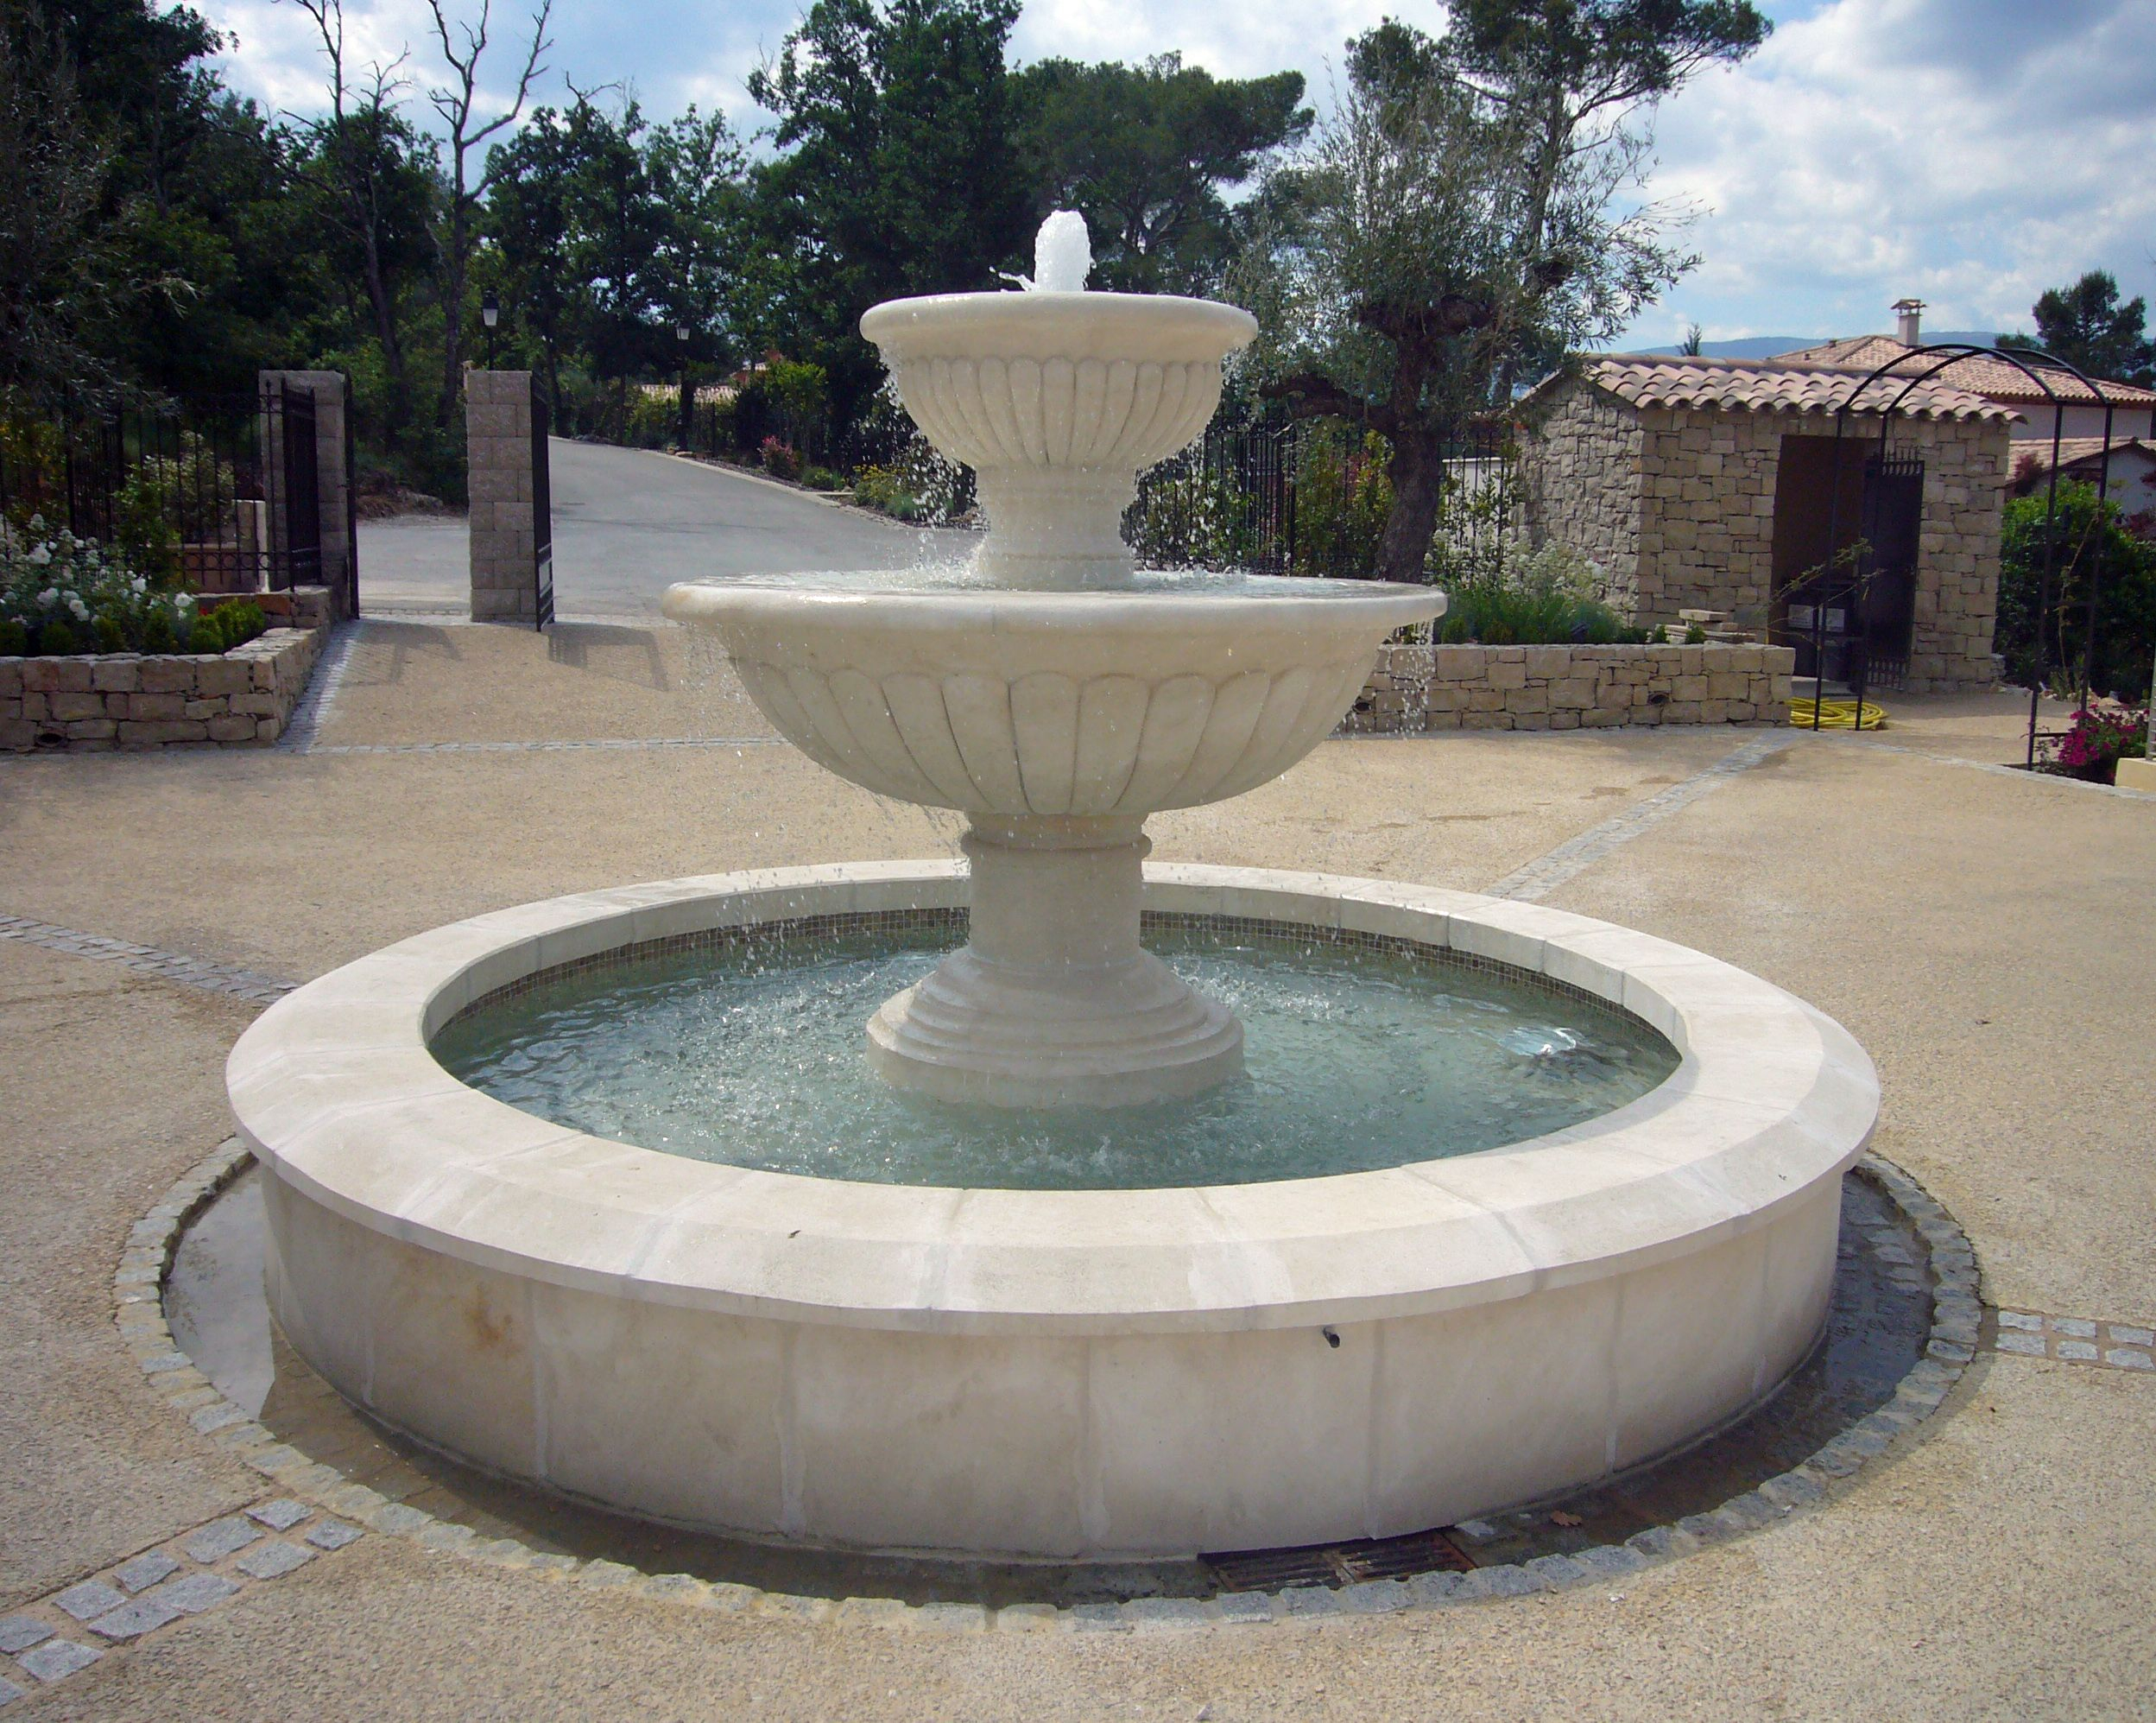 Atelierbidal : Belle Fontaine Ronde À Double Vasques À ... serapportantà Vasque En Pierre Pour Jardin